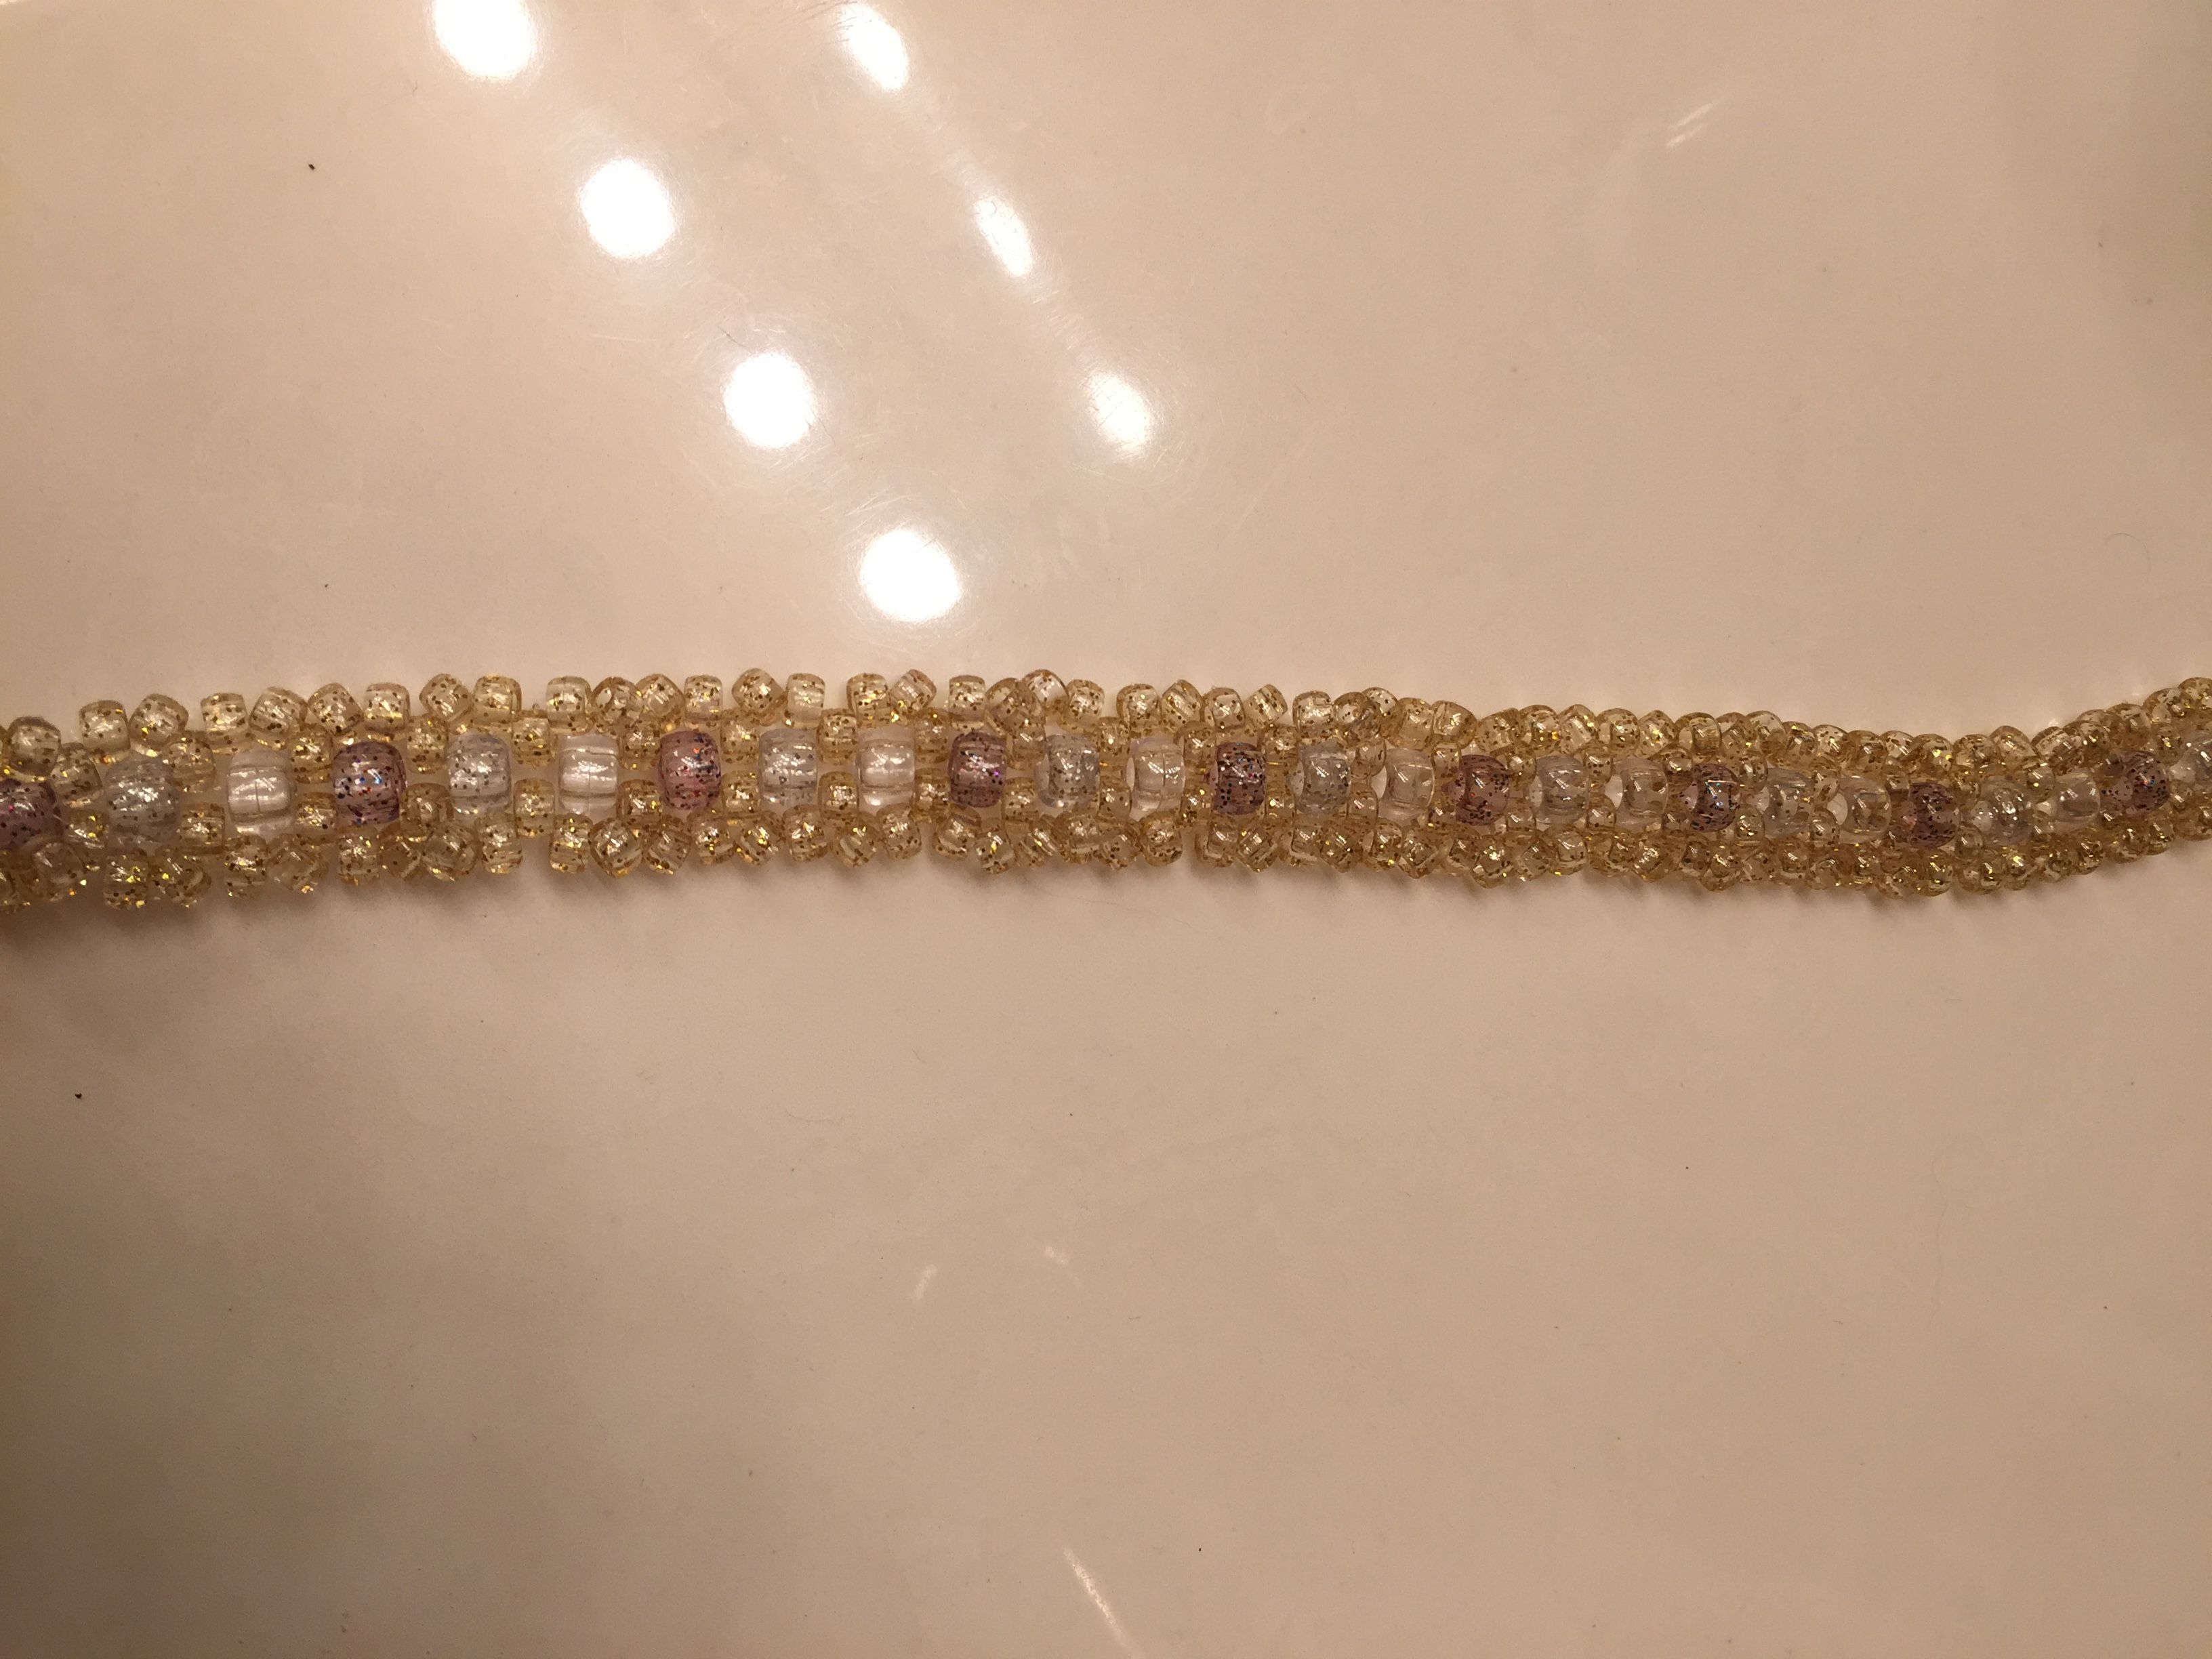 Banded with 9mm and mini pony beads.